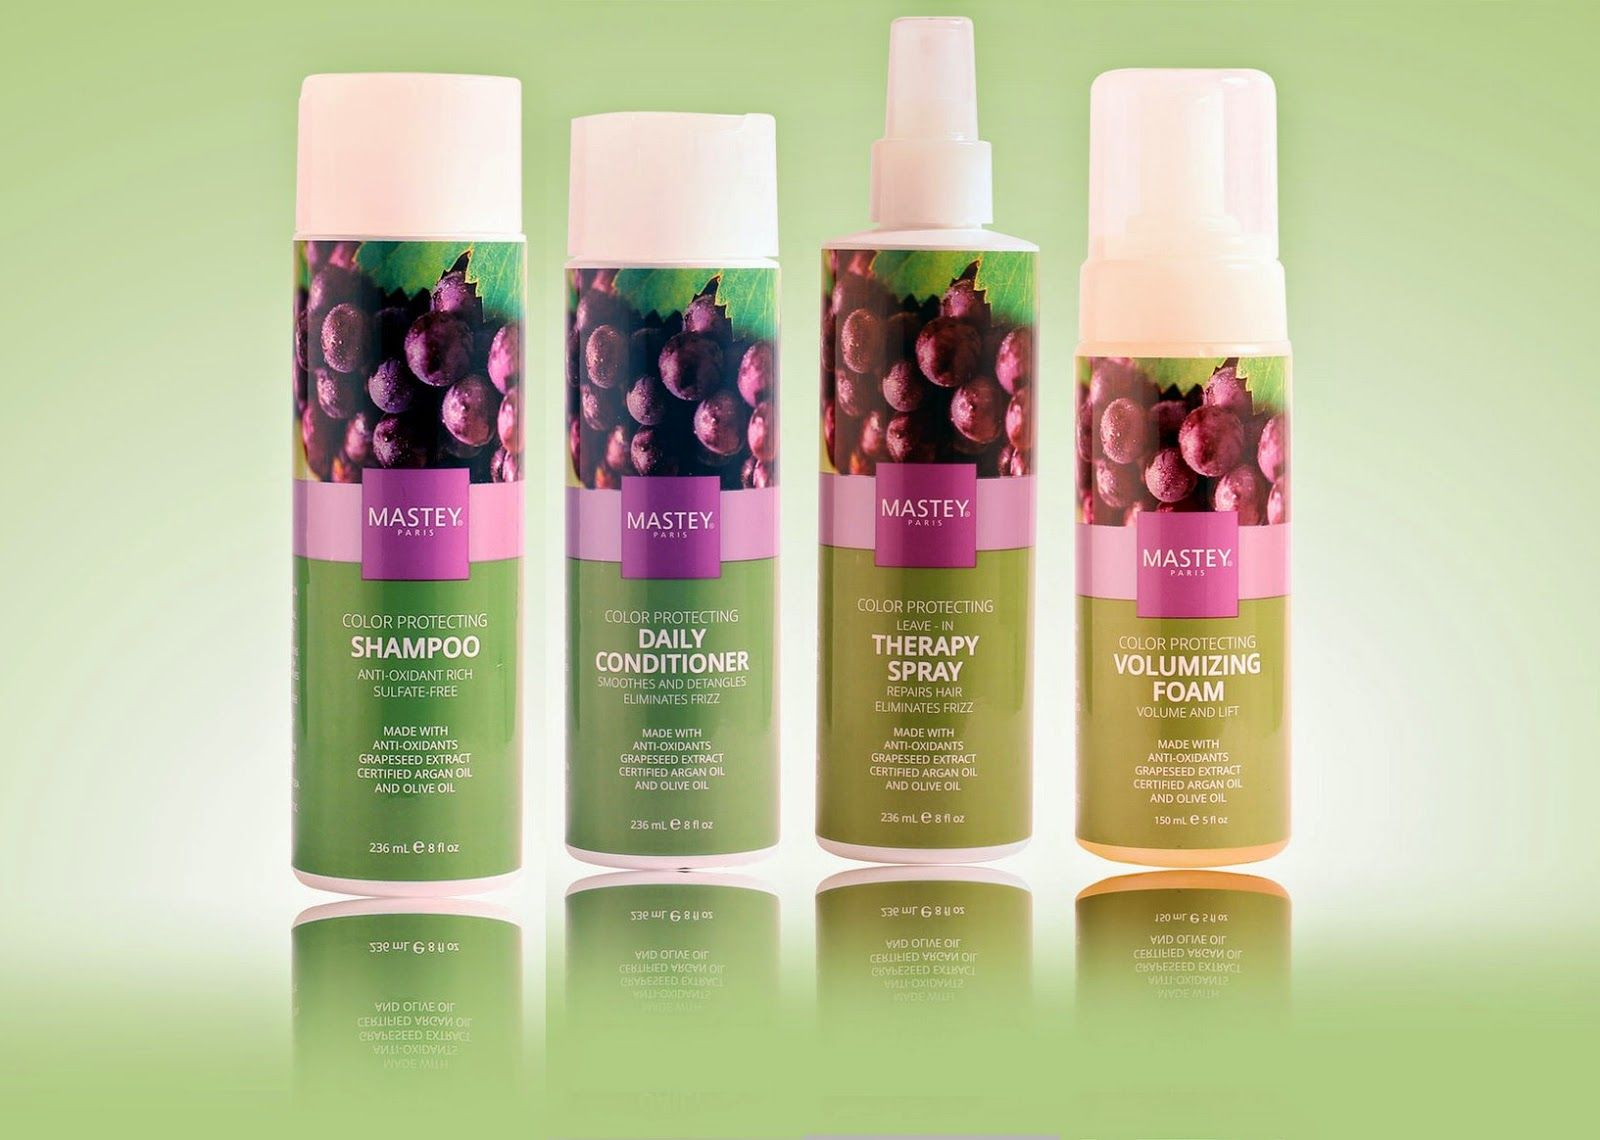 Mastey Eco Friendly Hair Care Prize Pack Giveaway Arv 81 Honor